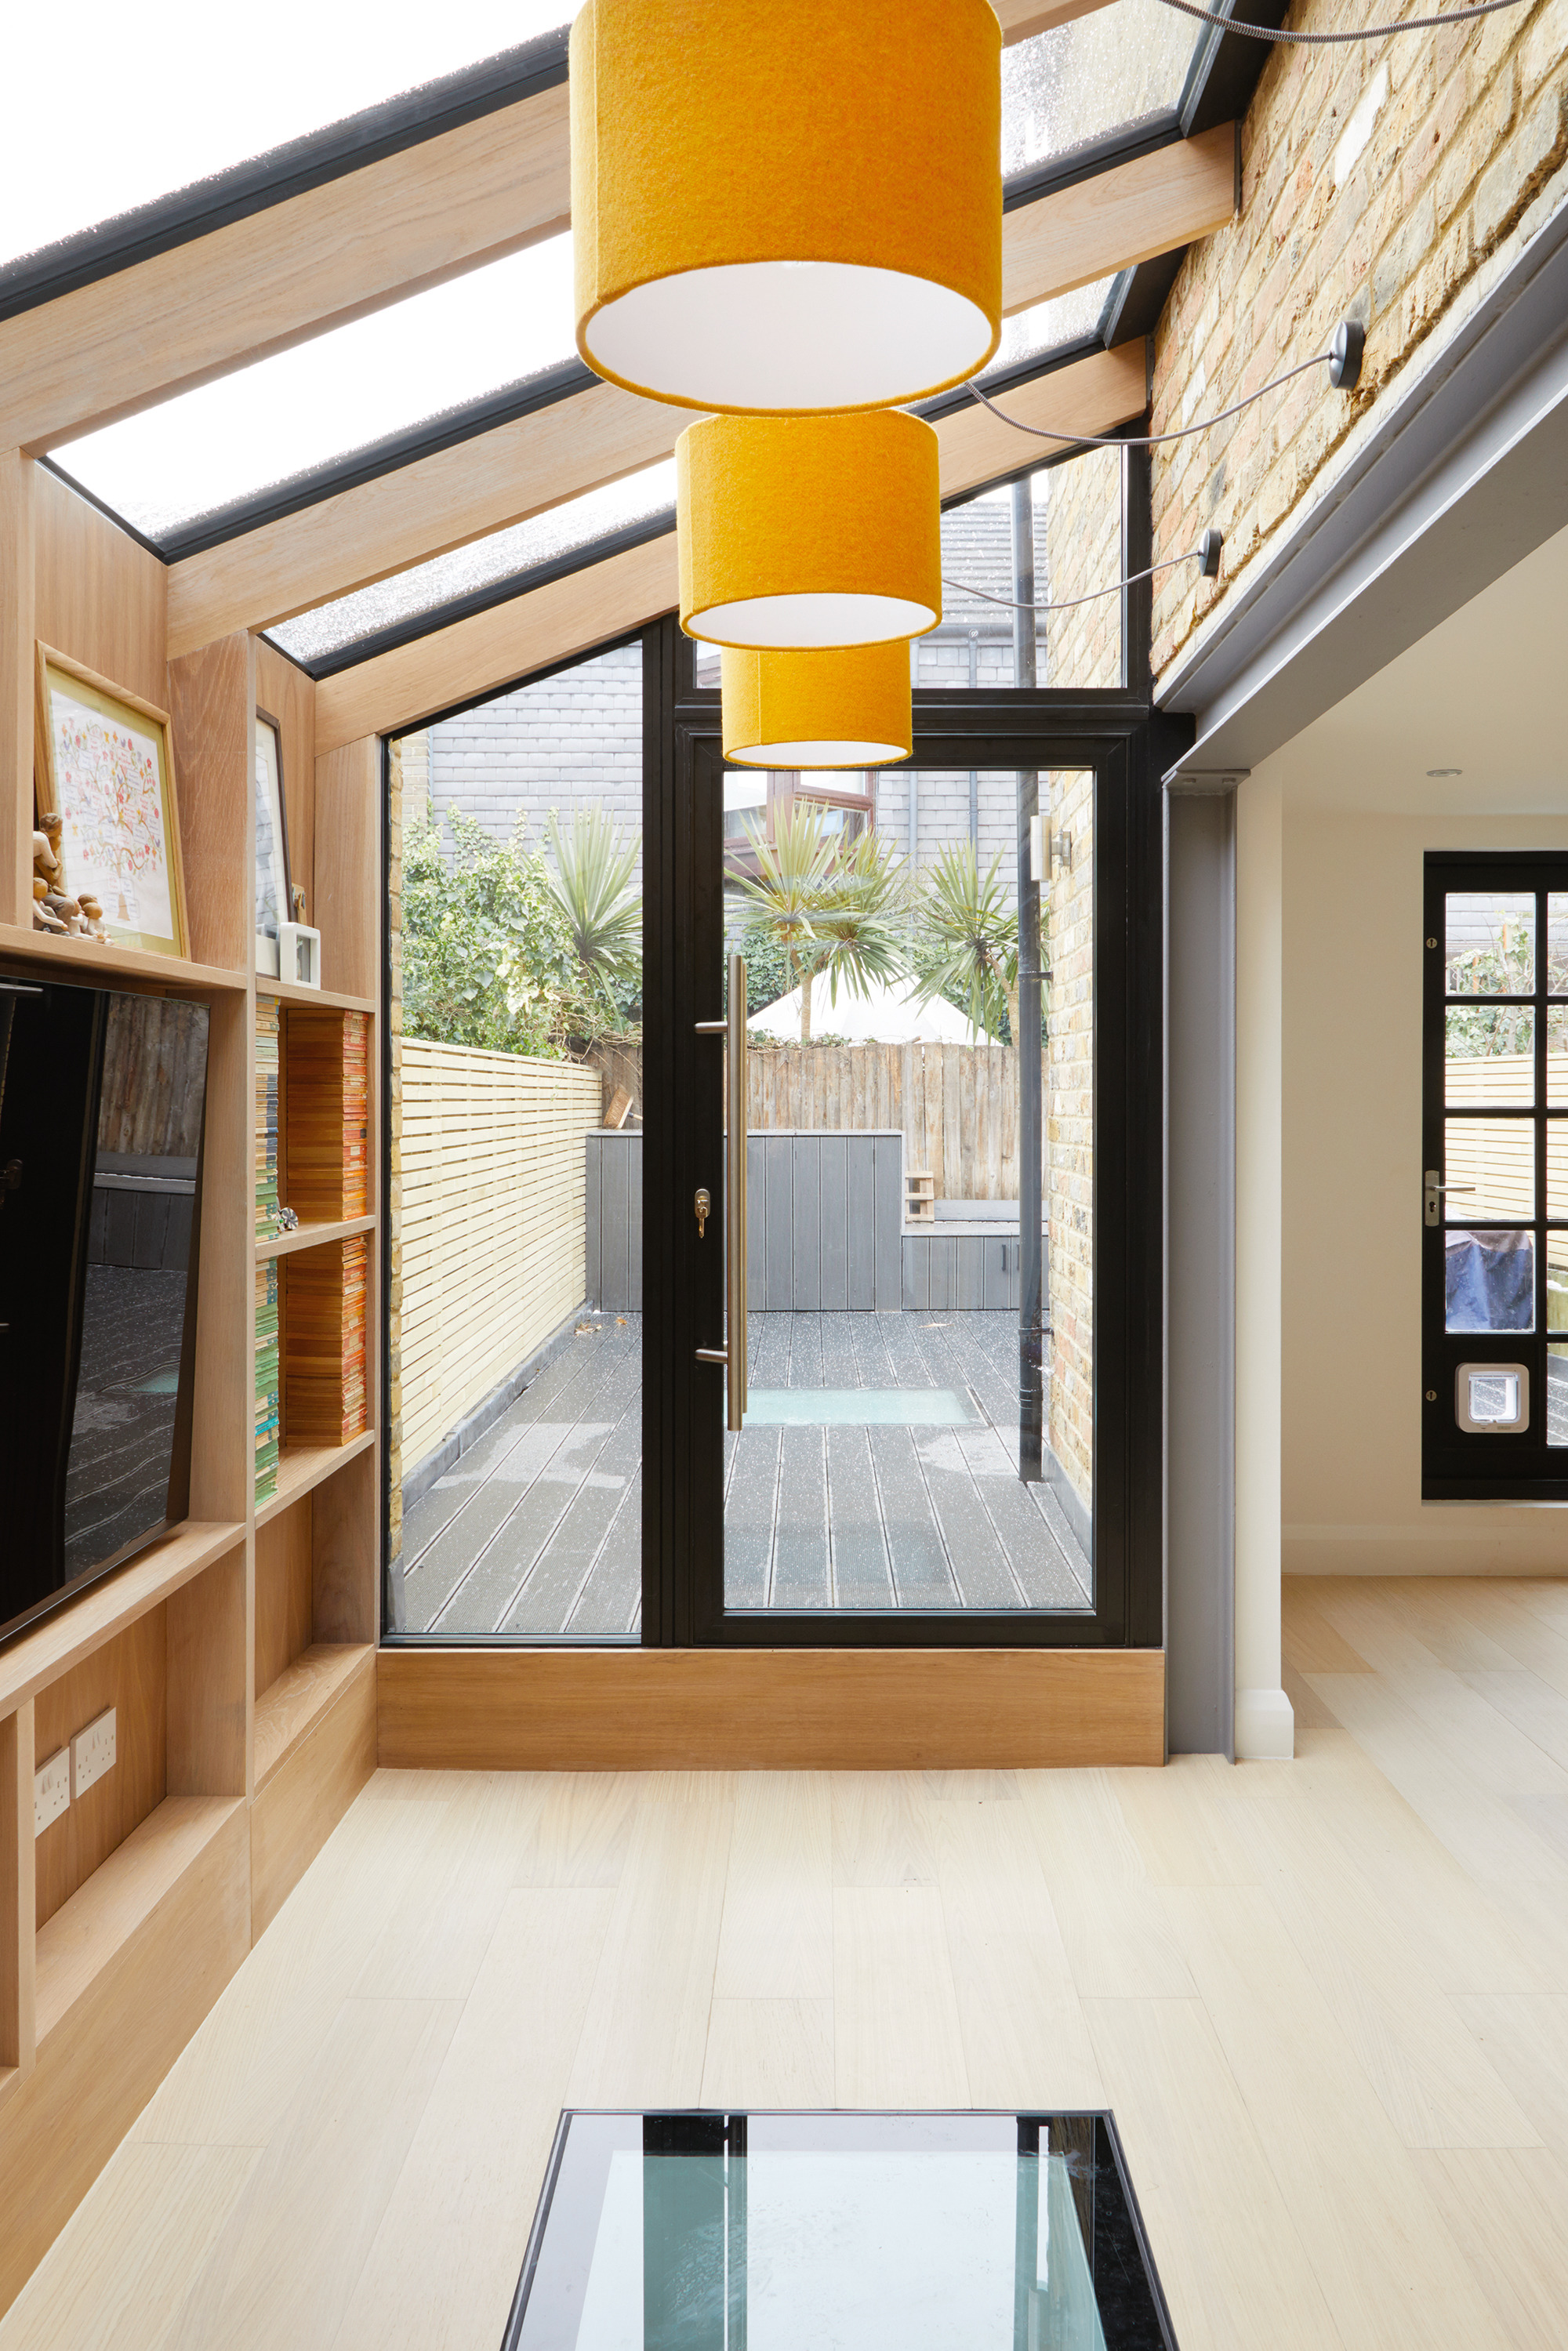 timber frame glazed extension Hut Architecture interior credit Heather Hobhouse